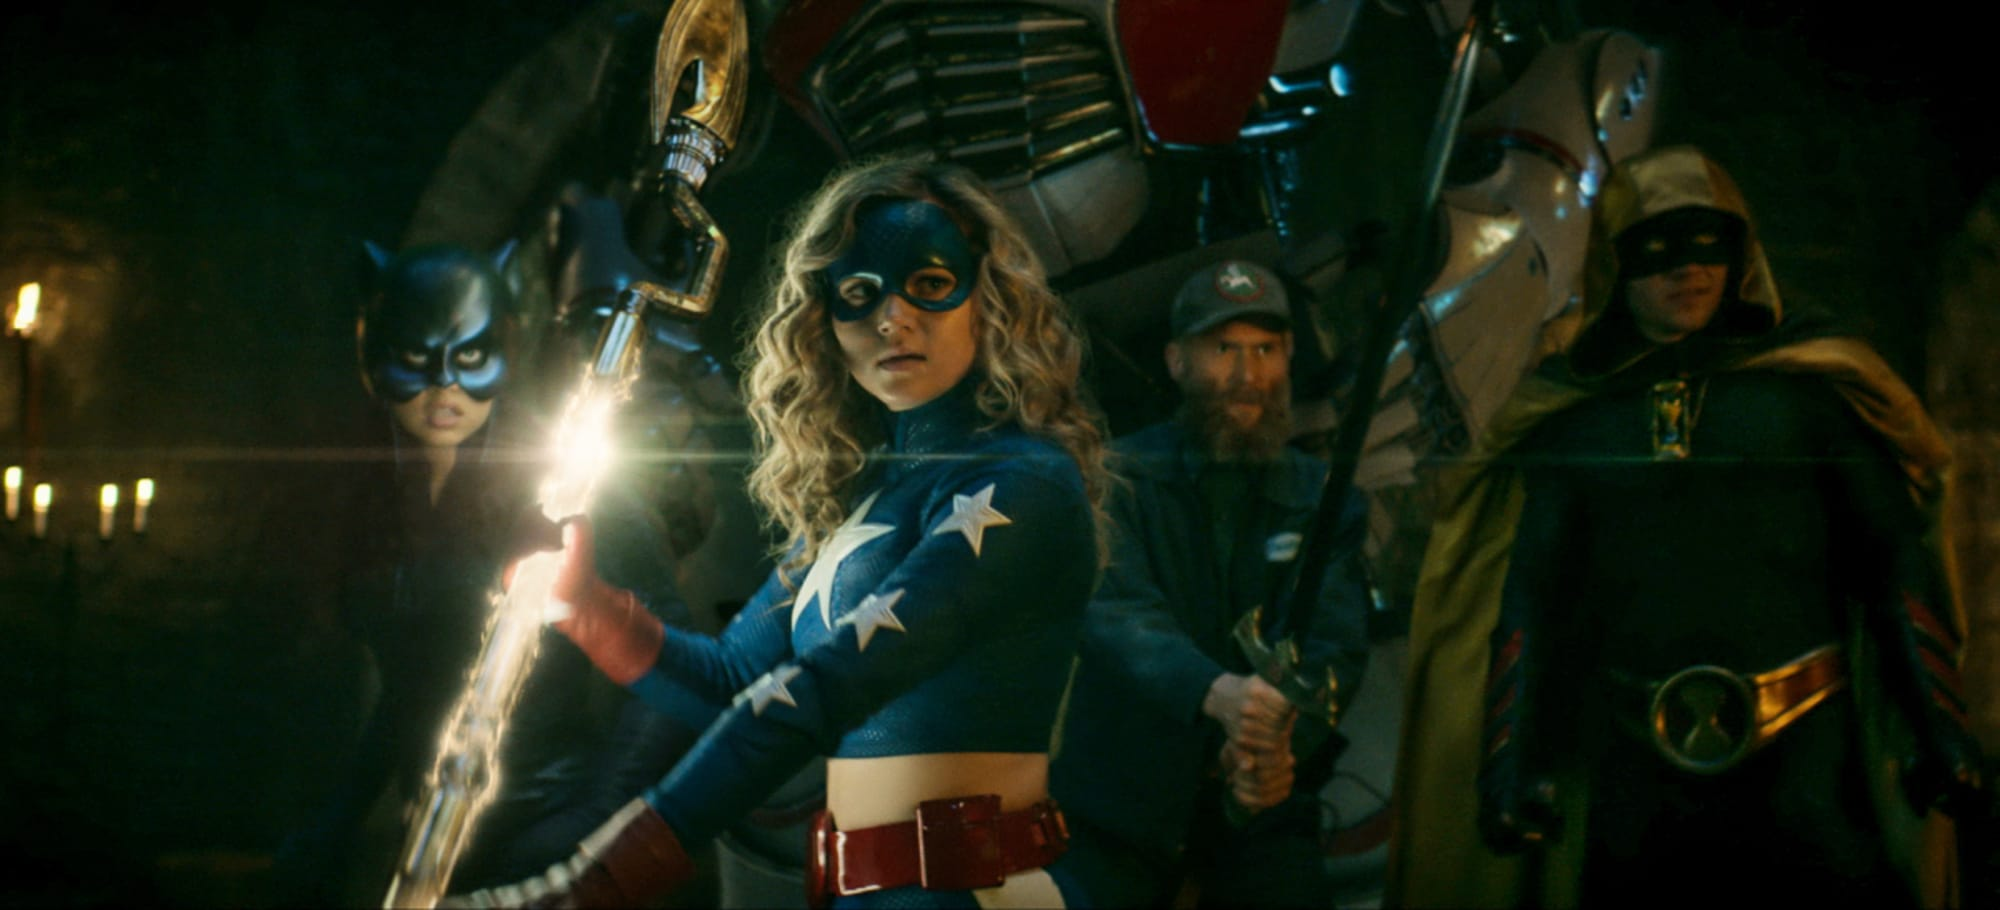 Stargirl season 1, episode 13 review: Stars and S.T.R.I.P.E. Part Two